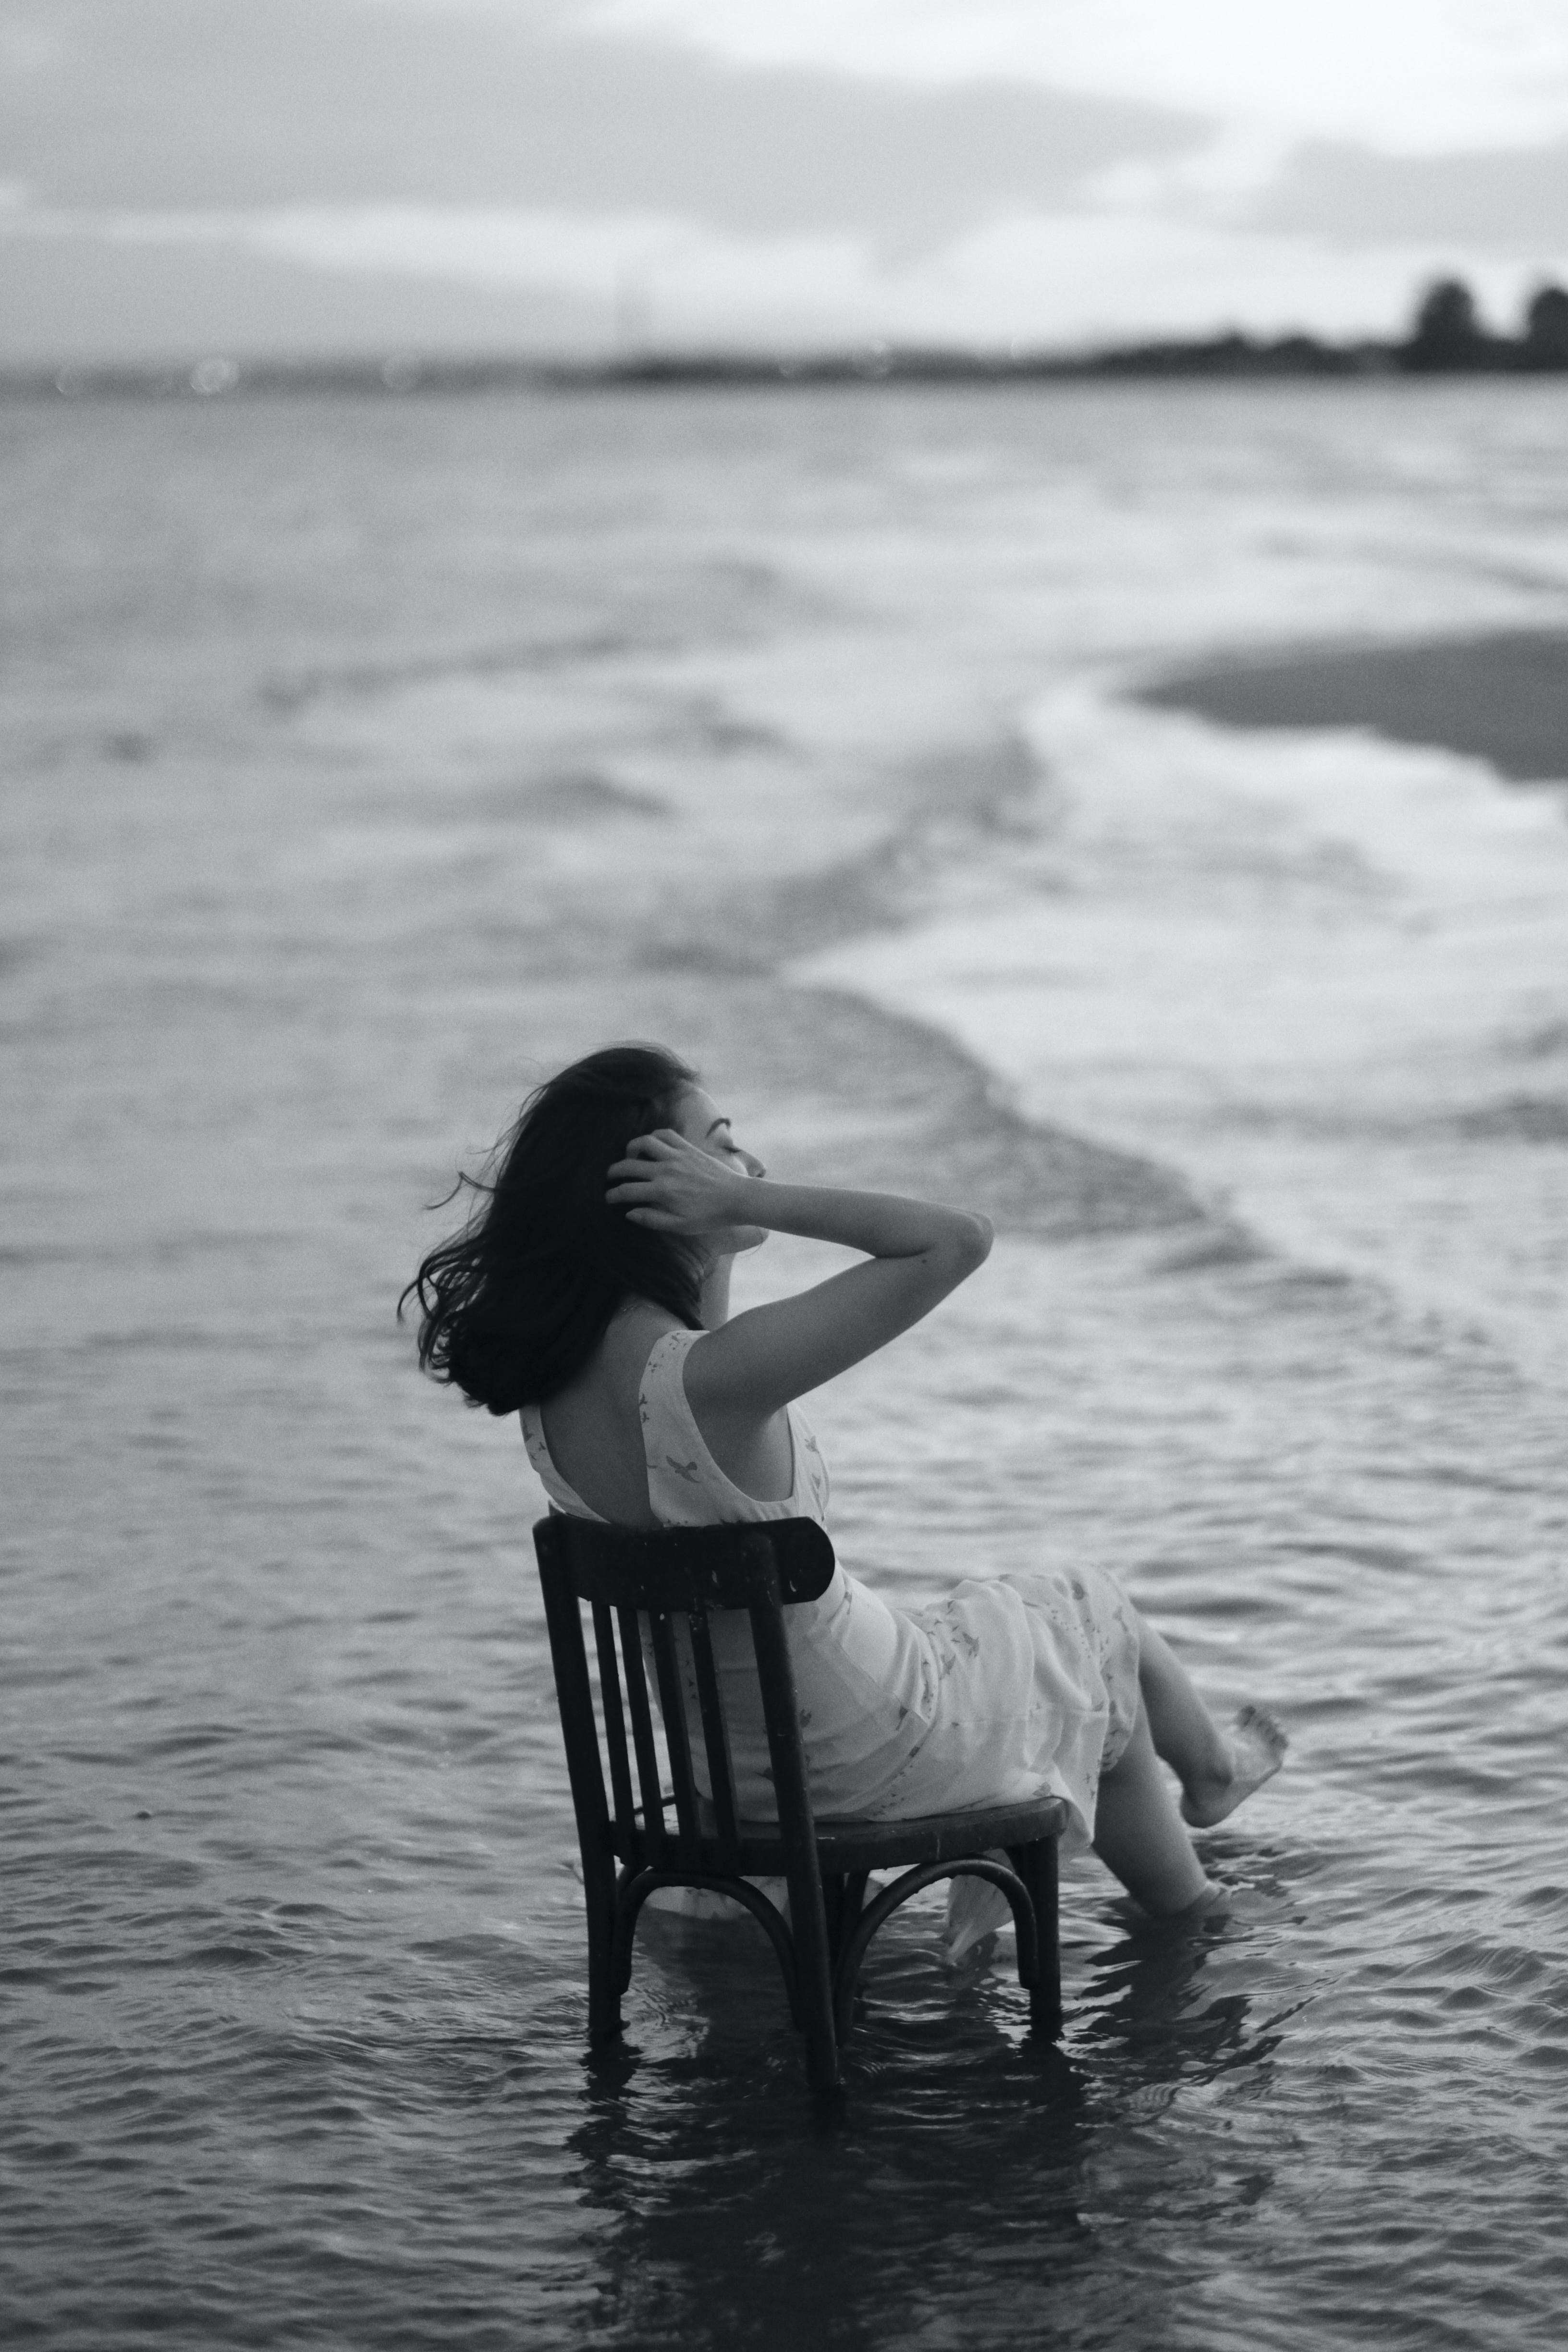 grayscale photography of woman sitting on chair on body of water